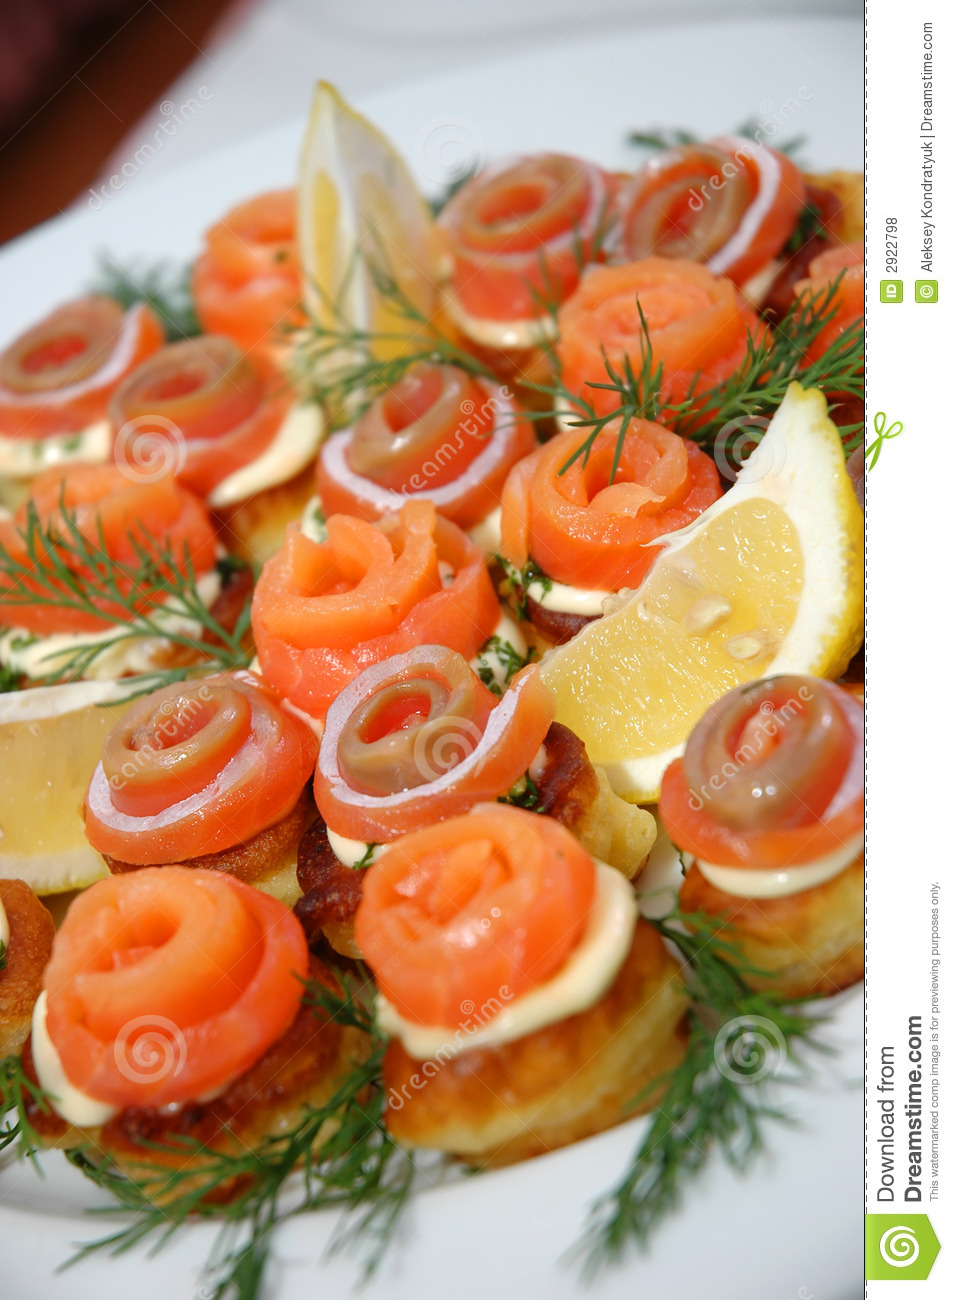 Delicious appetizing food